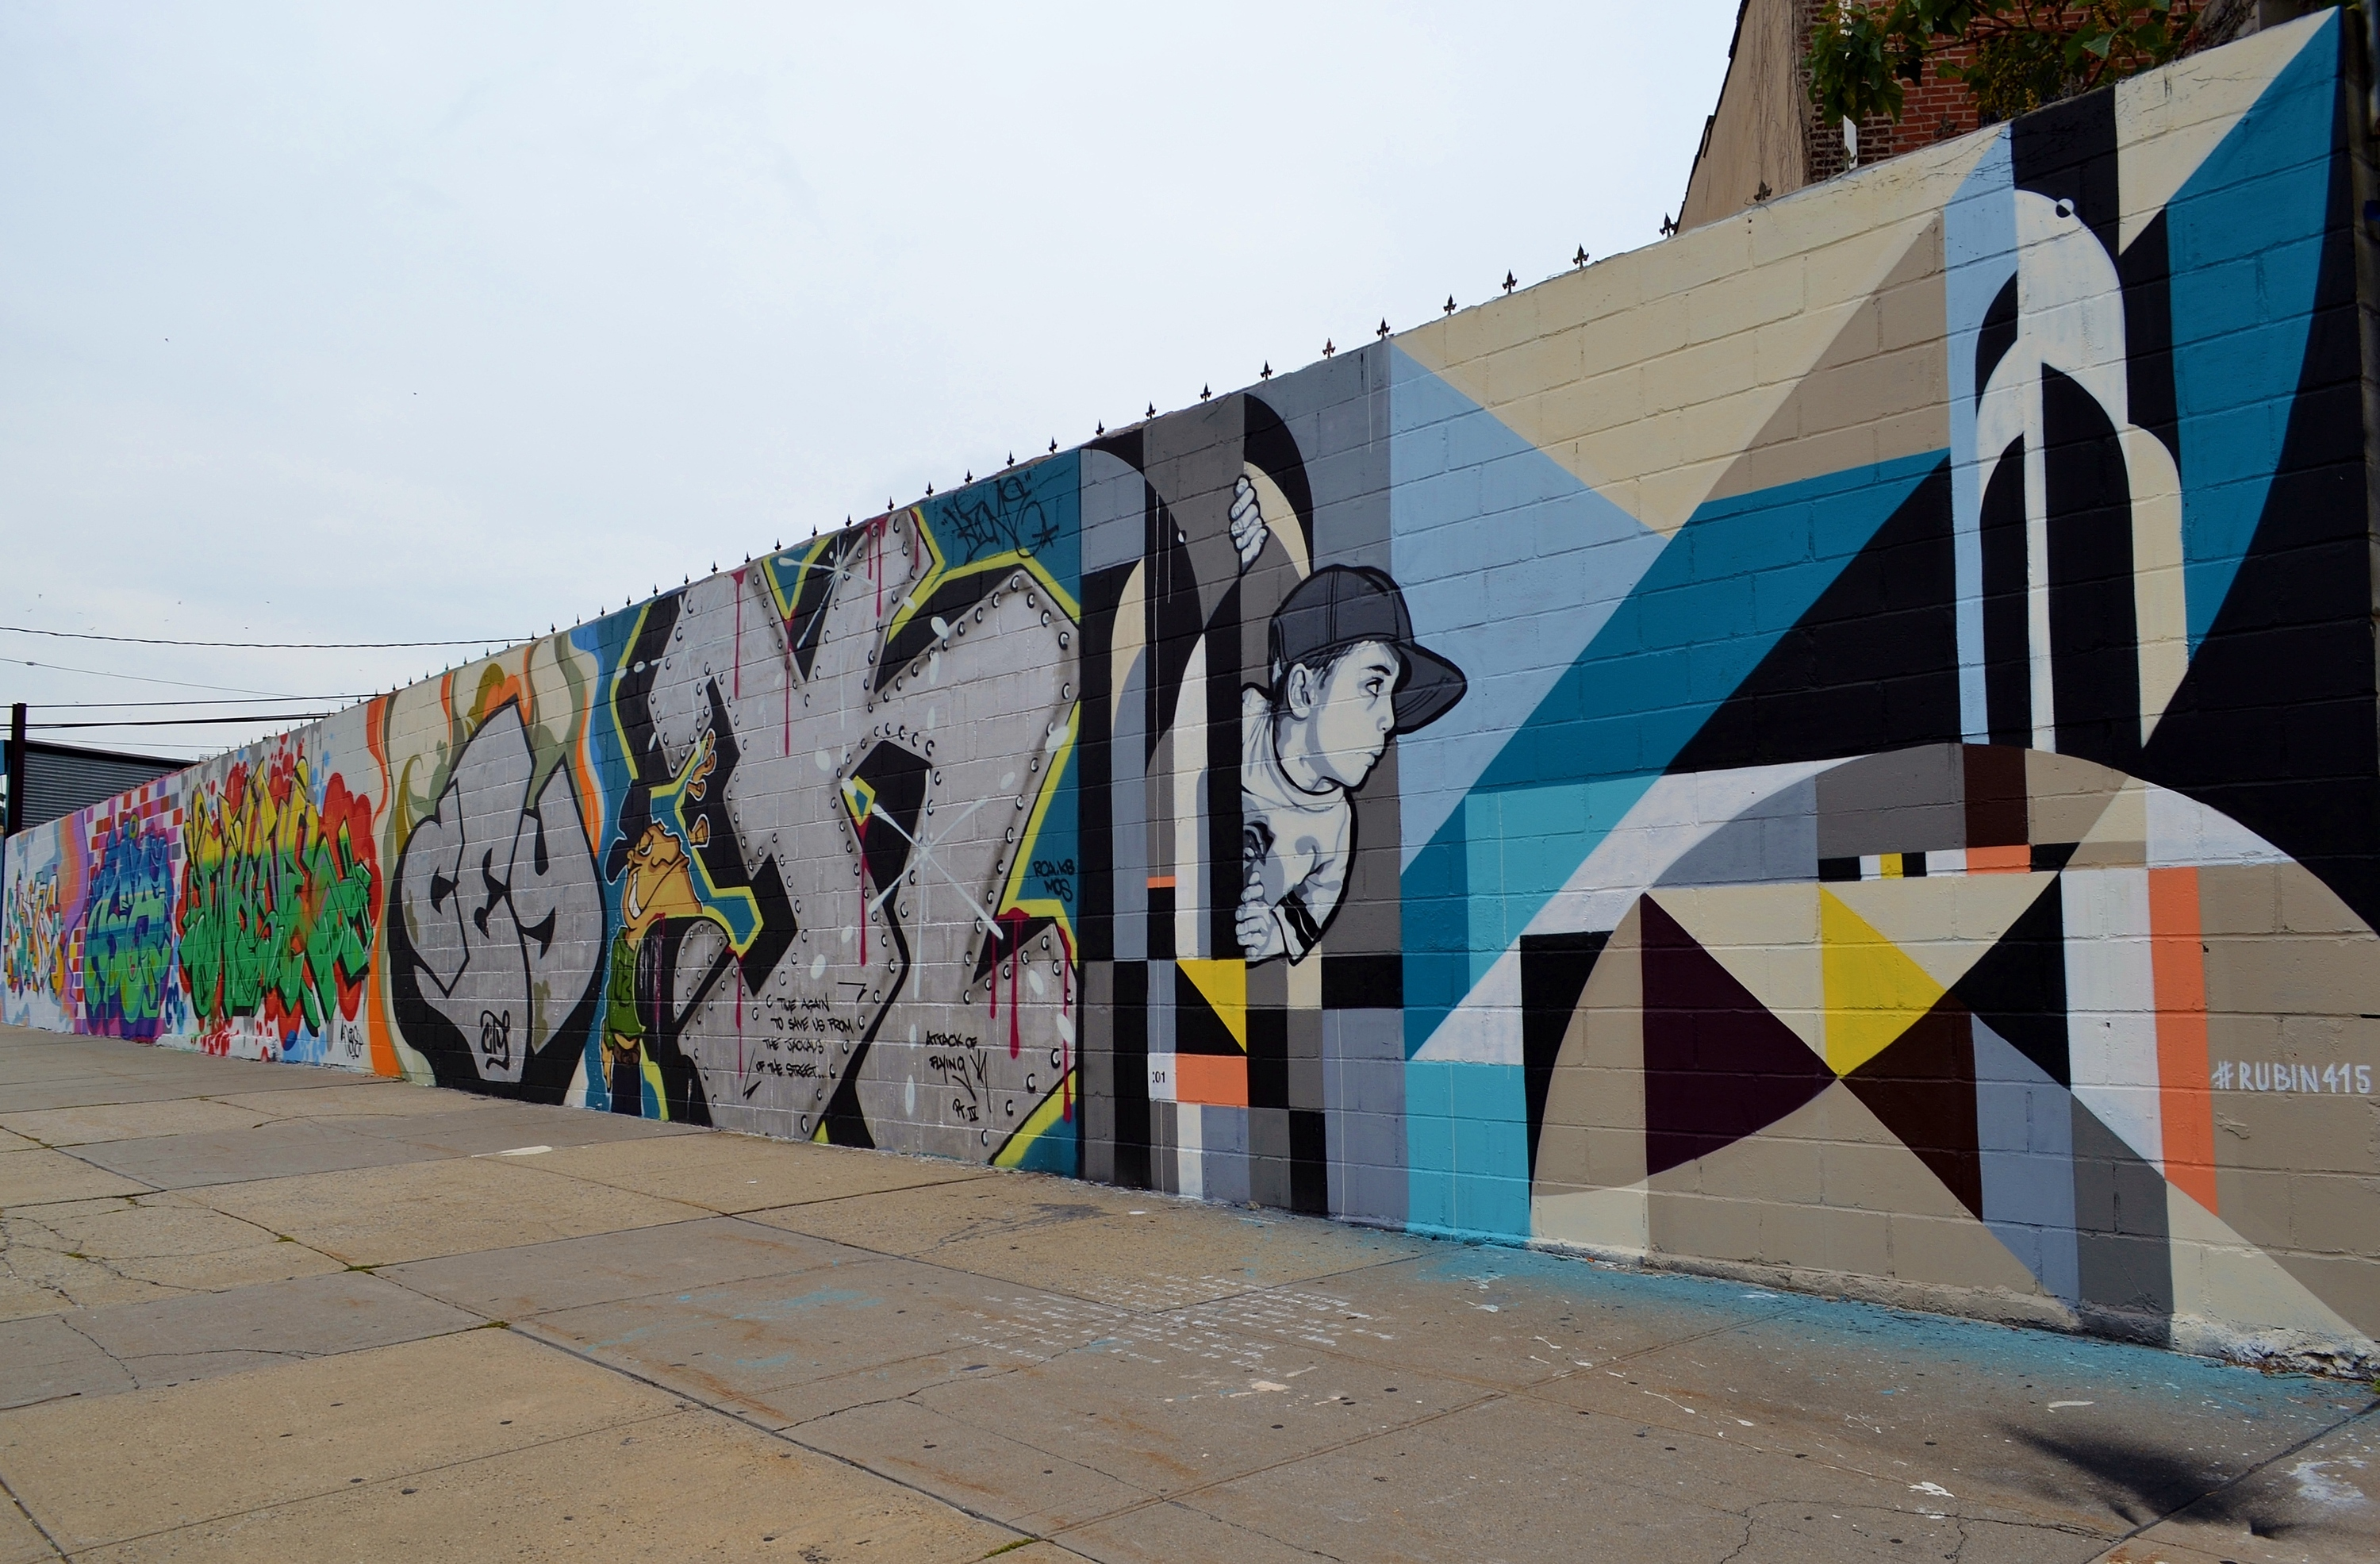 Check out cool street art from the 7th Annual Welling Court Mural Project in Queens